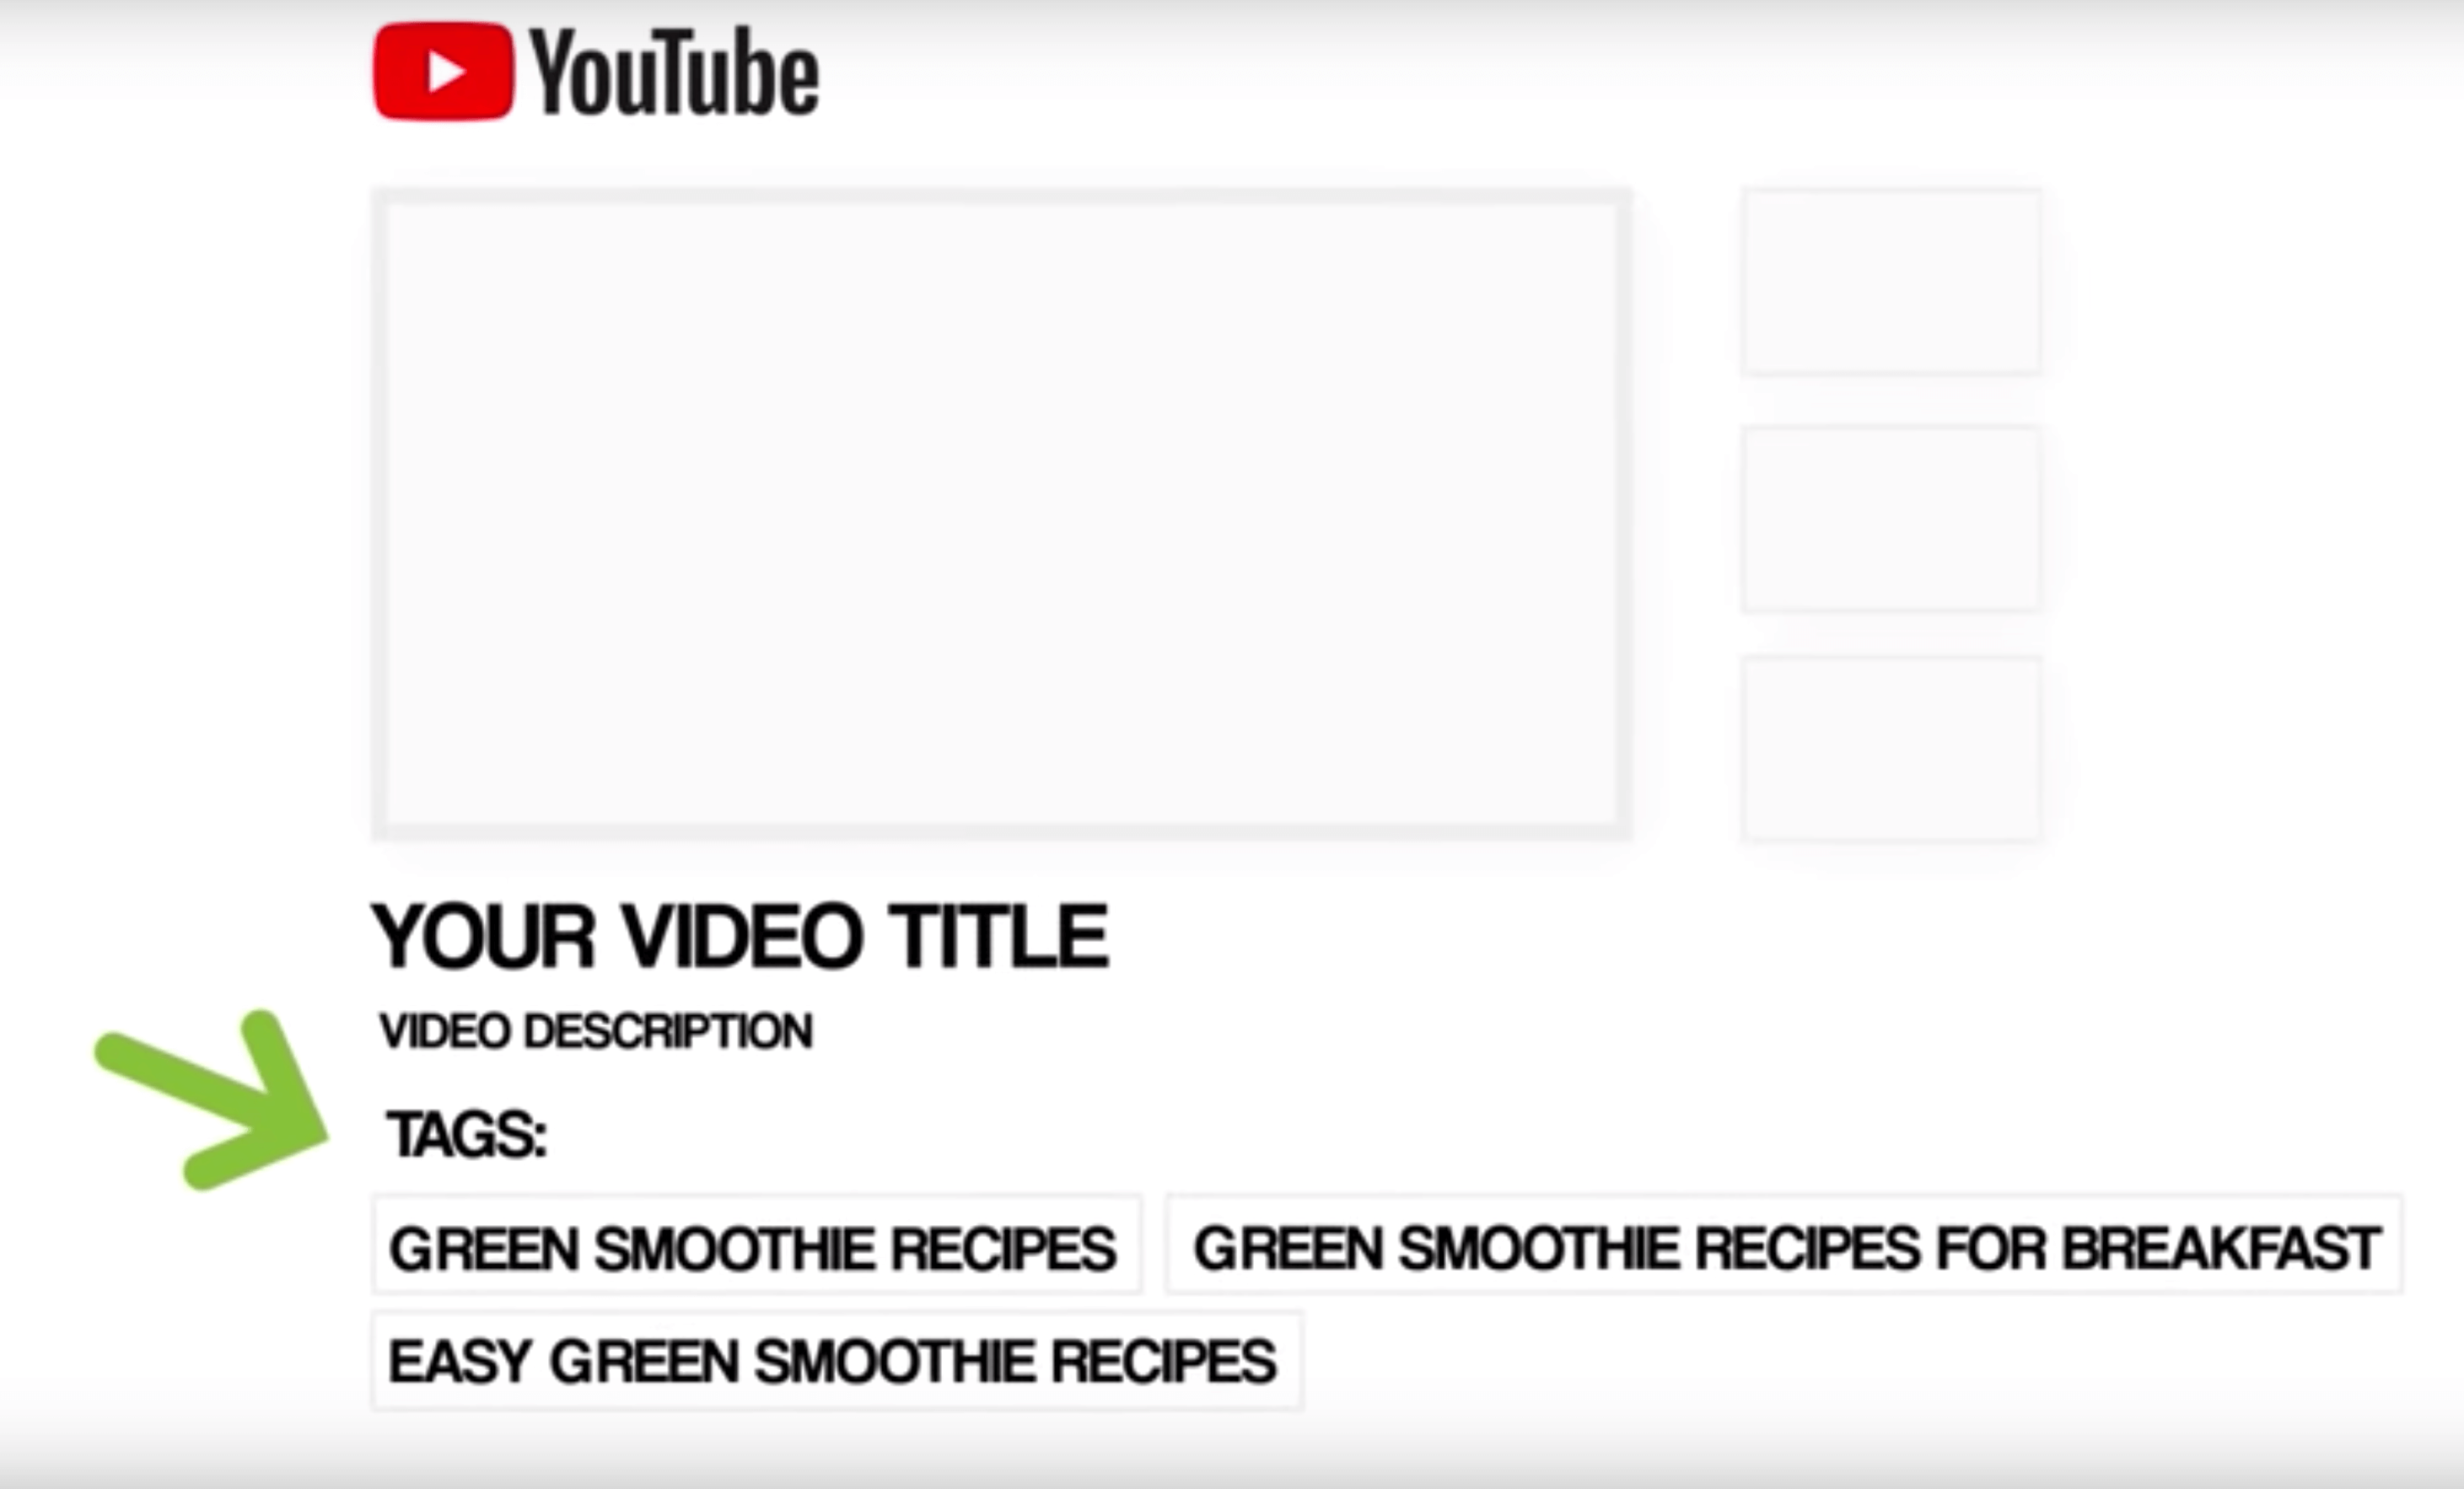 youtube-seo-tips-tags